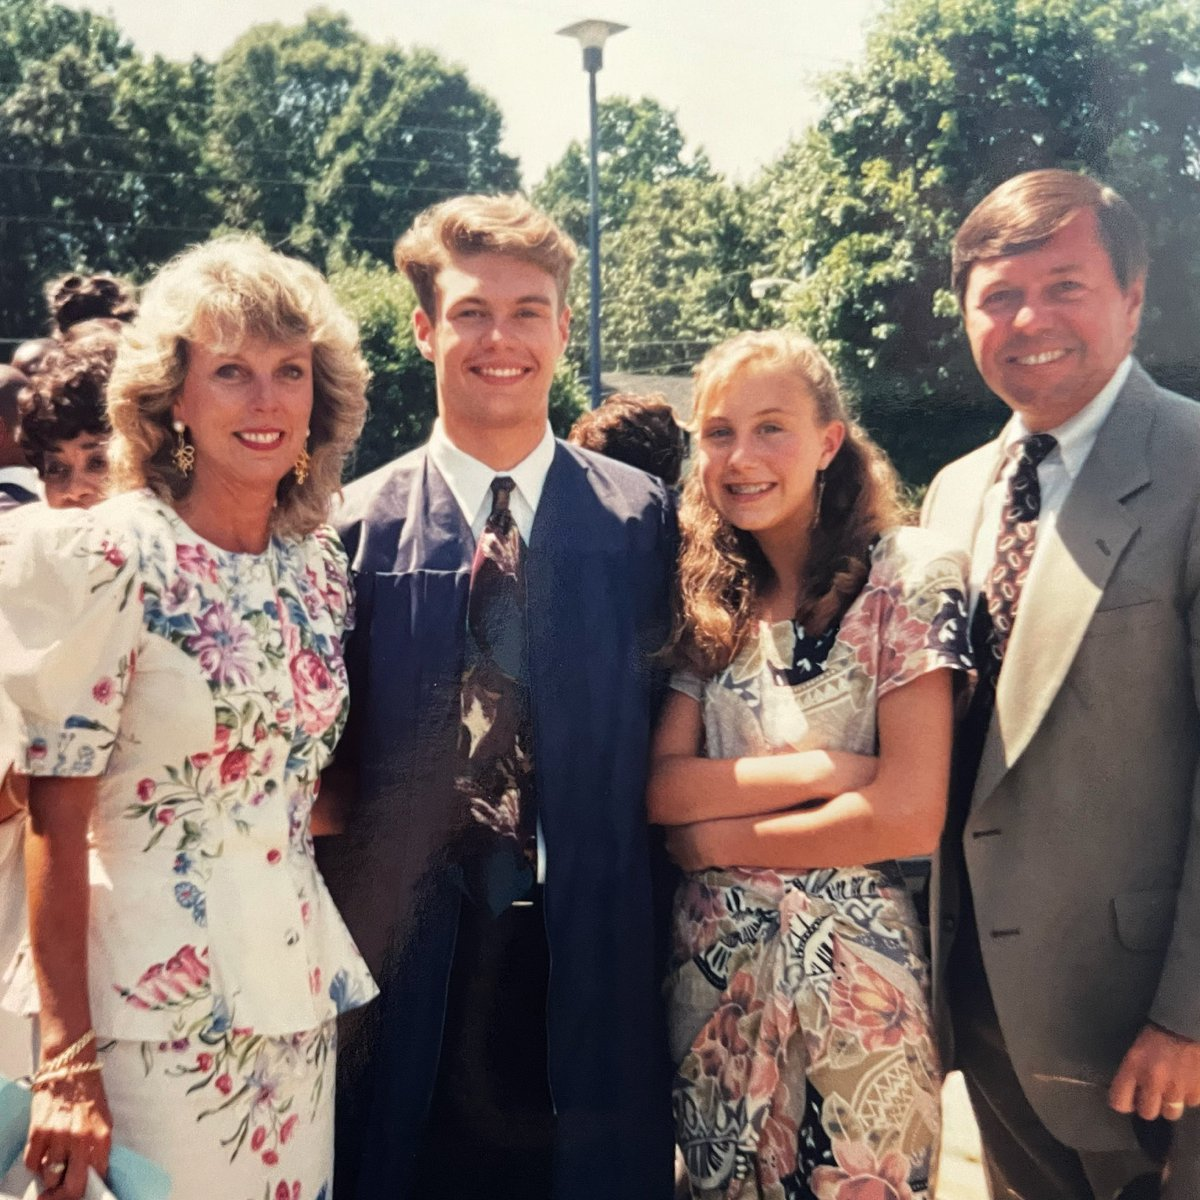 The day I got my high school diploma and mom earned her degree in fashion #tbt https://t.co/7WNFMlYY9k